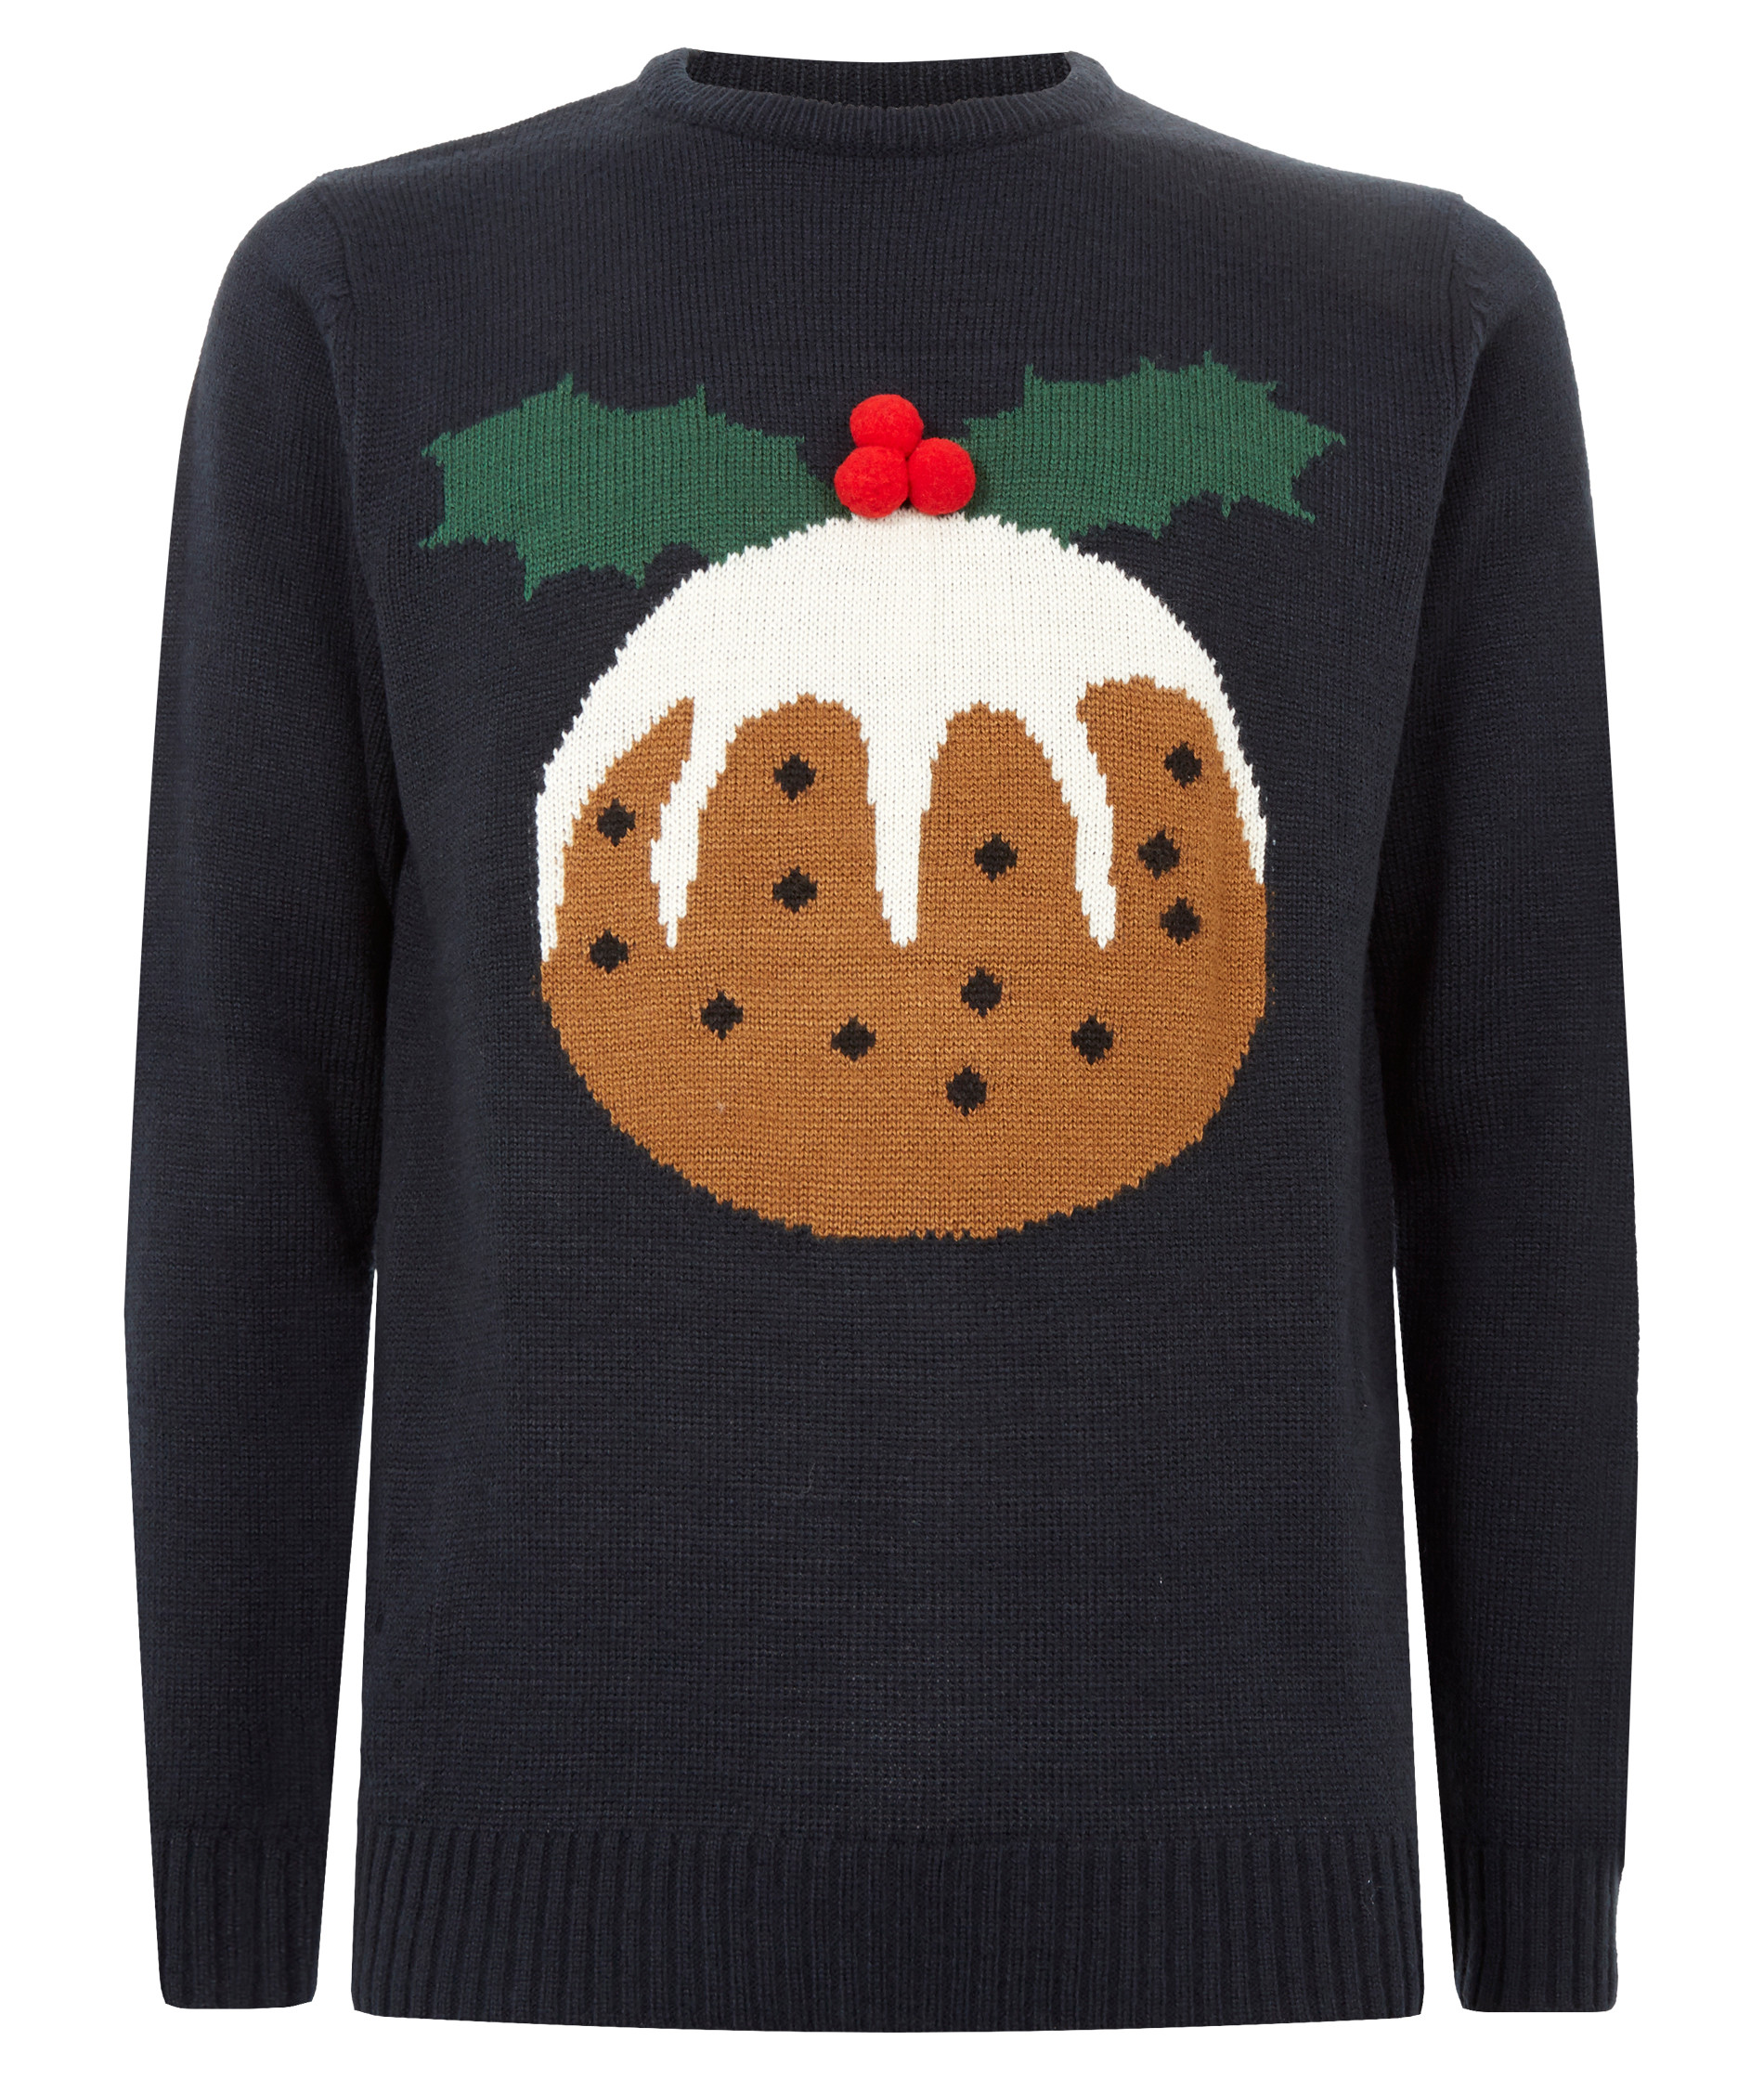 christmas jumper christmas jumpers are already available to buy now! or you could try making  your QQKJCVO